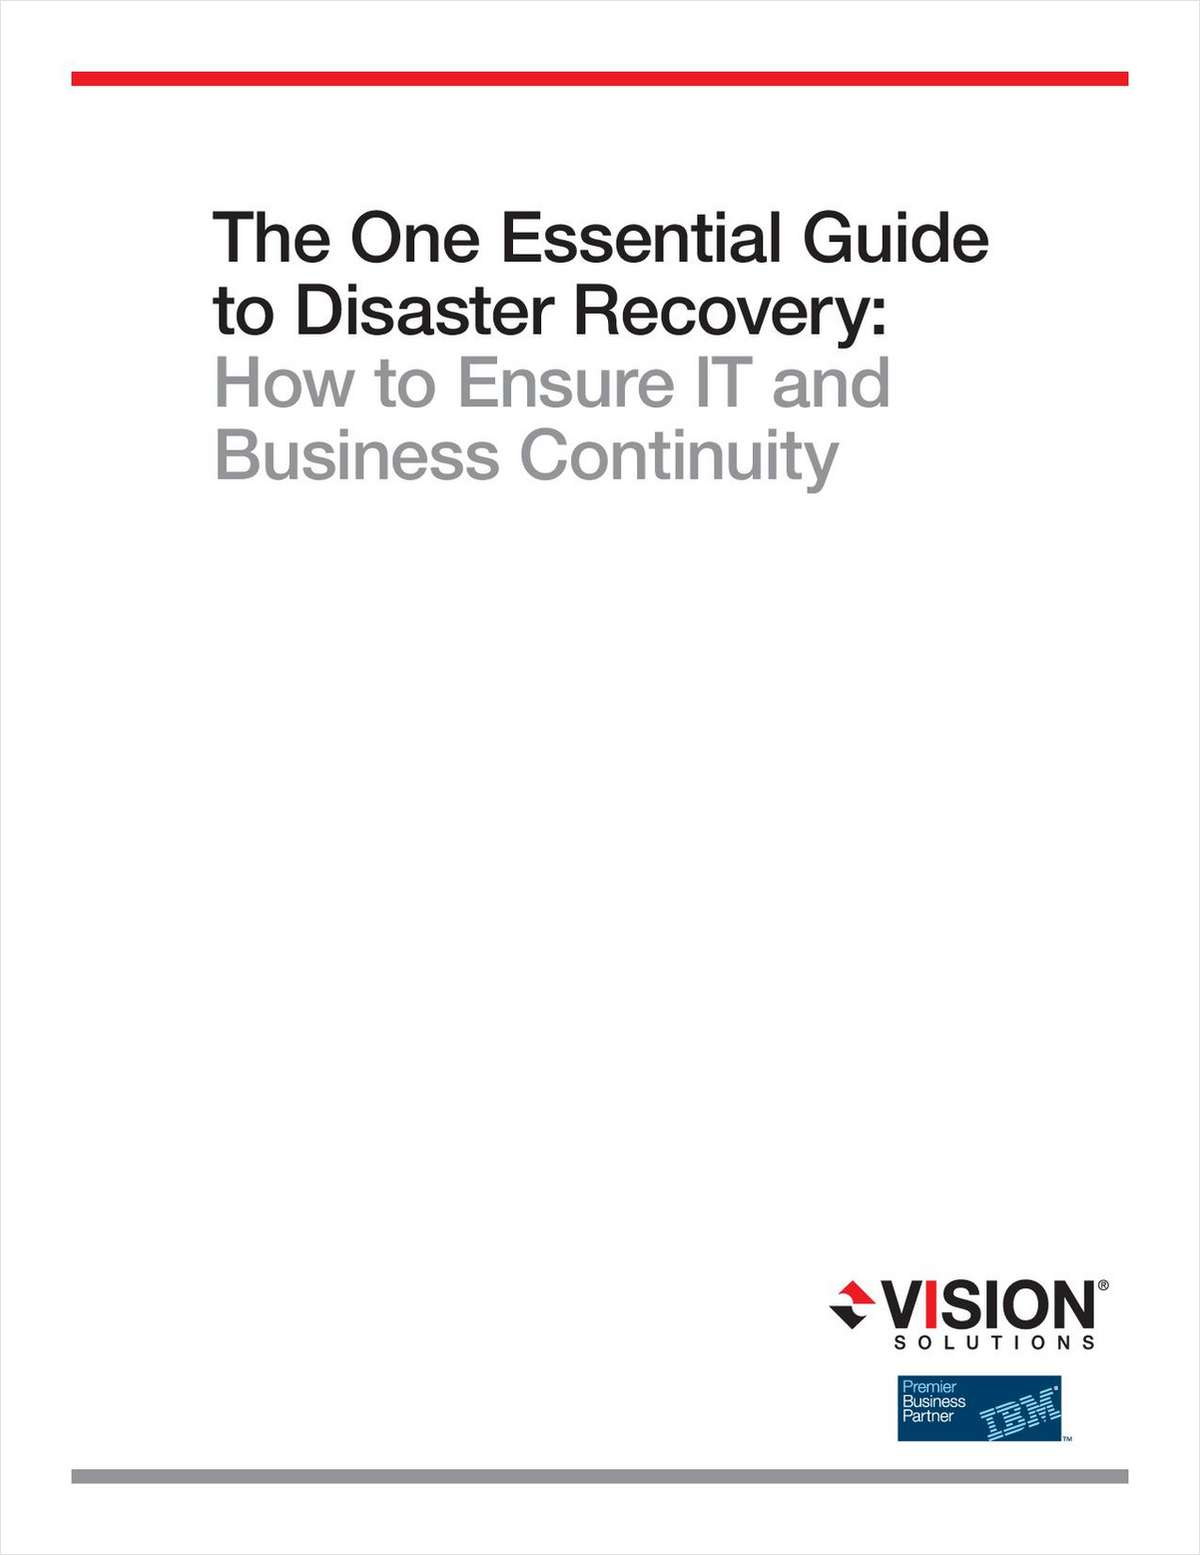 The One Essential Guide to Disaster Recovery: How to Ensure IT and Business Continuity